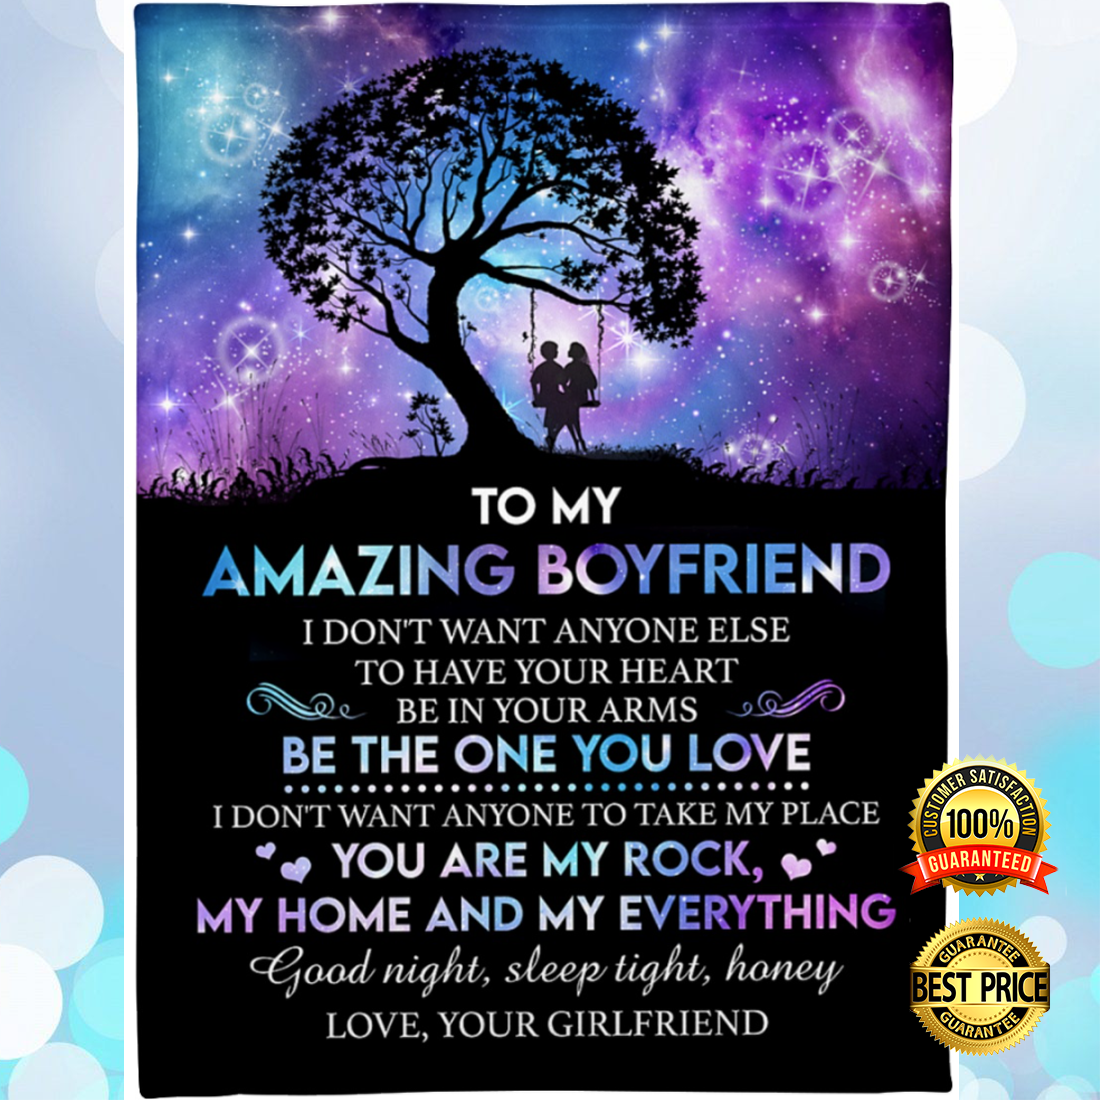 [NEW] TO MY AMAZING BOYFRIEND I DON'T WANT ANYONE ELSE TO HAVE YOUR HEART BLANKET